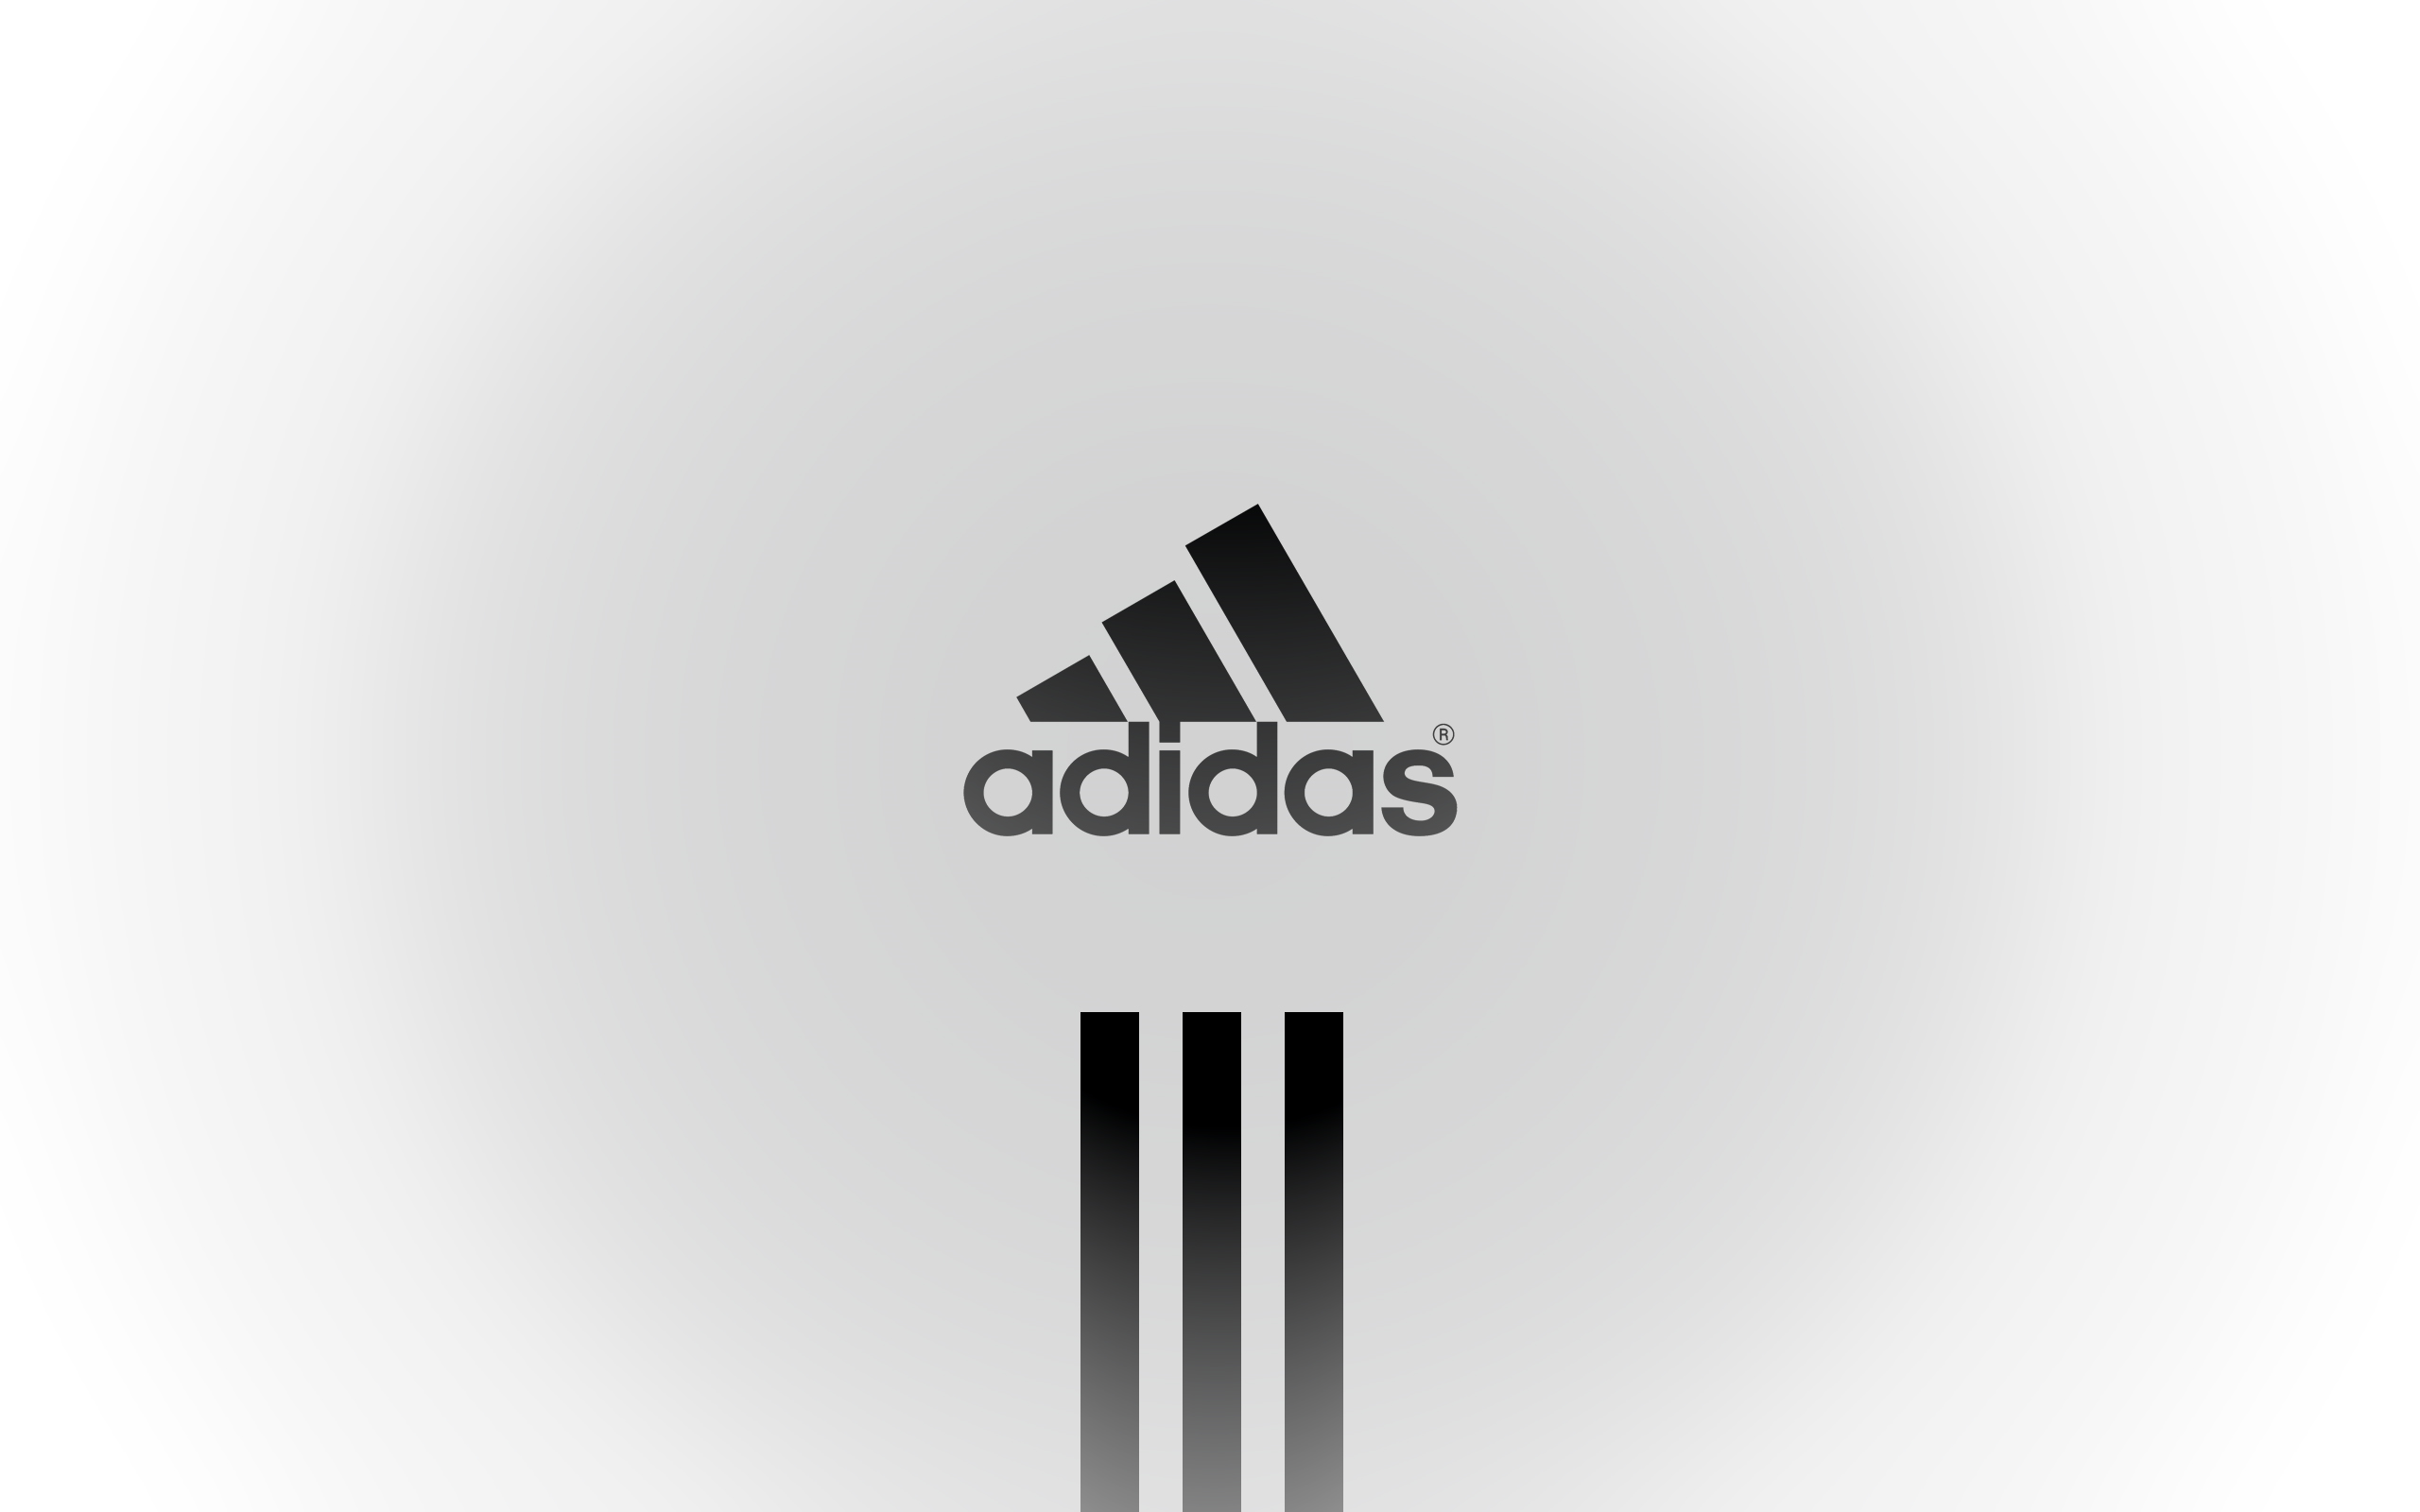 High Quality Adidas Wallpapers | Full HD Pictures